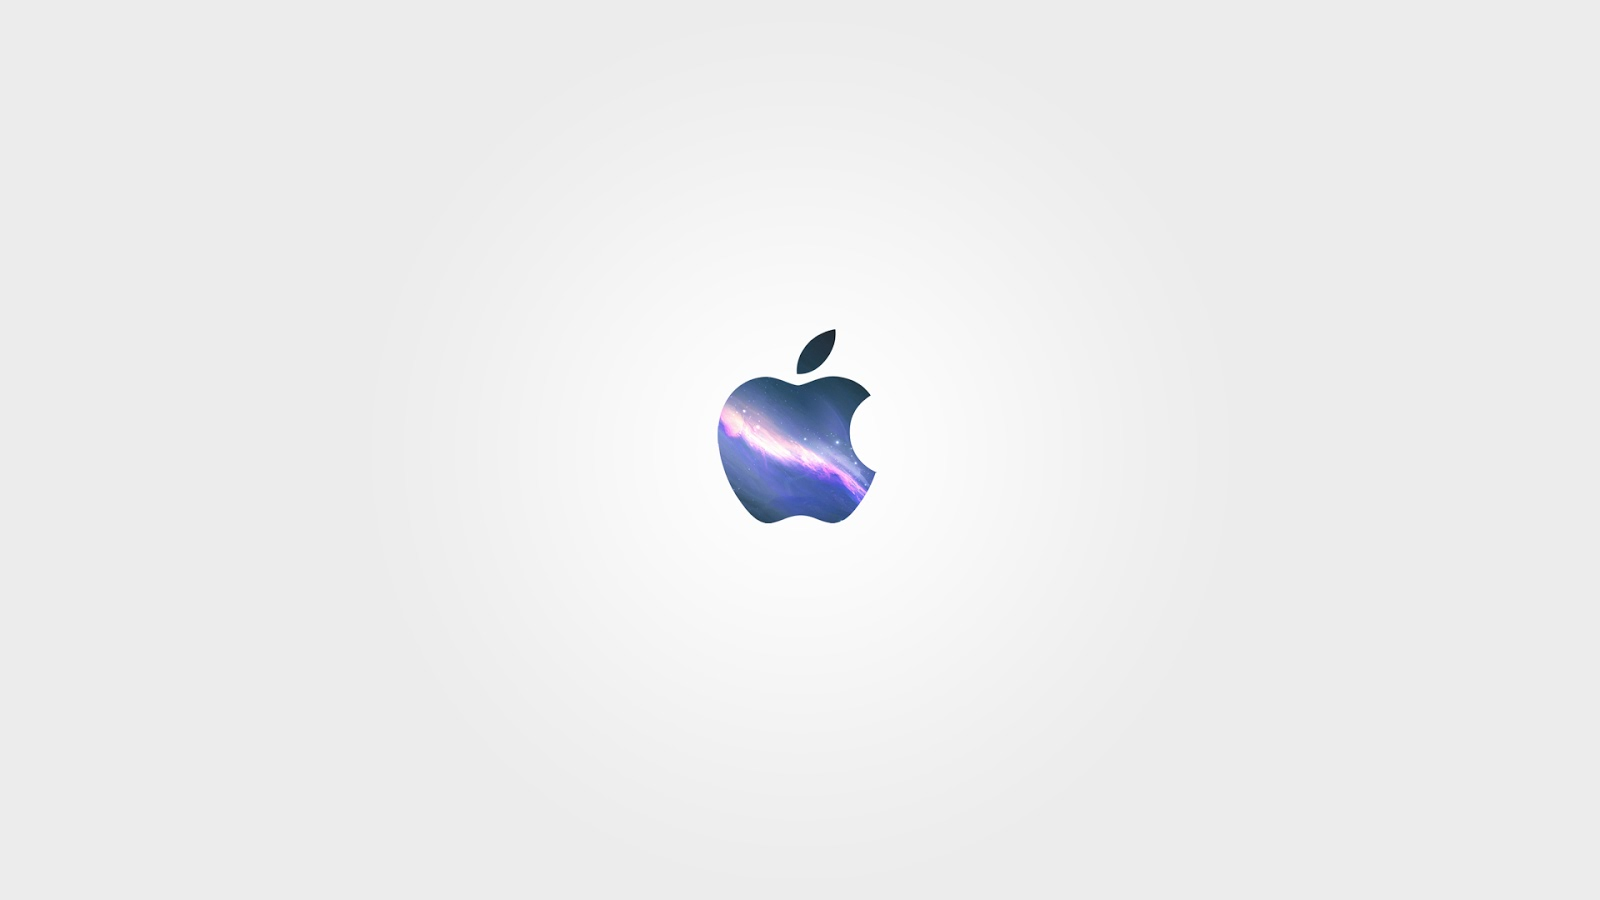 Free Code Projects: Mac Wallpapers, Mac Backgrounds, Mac